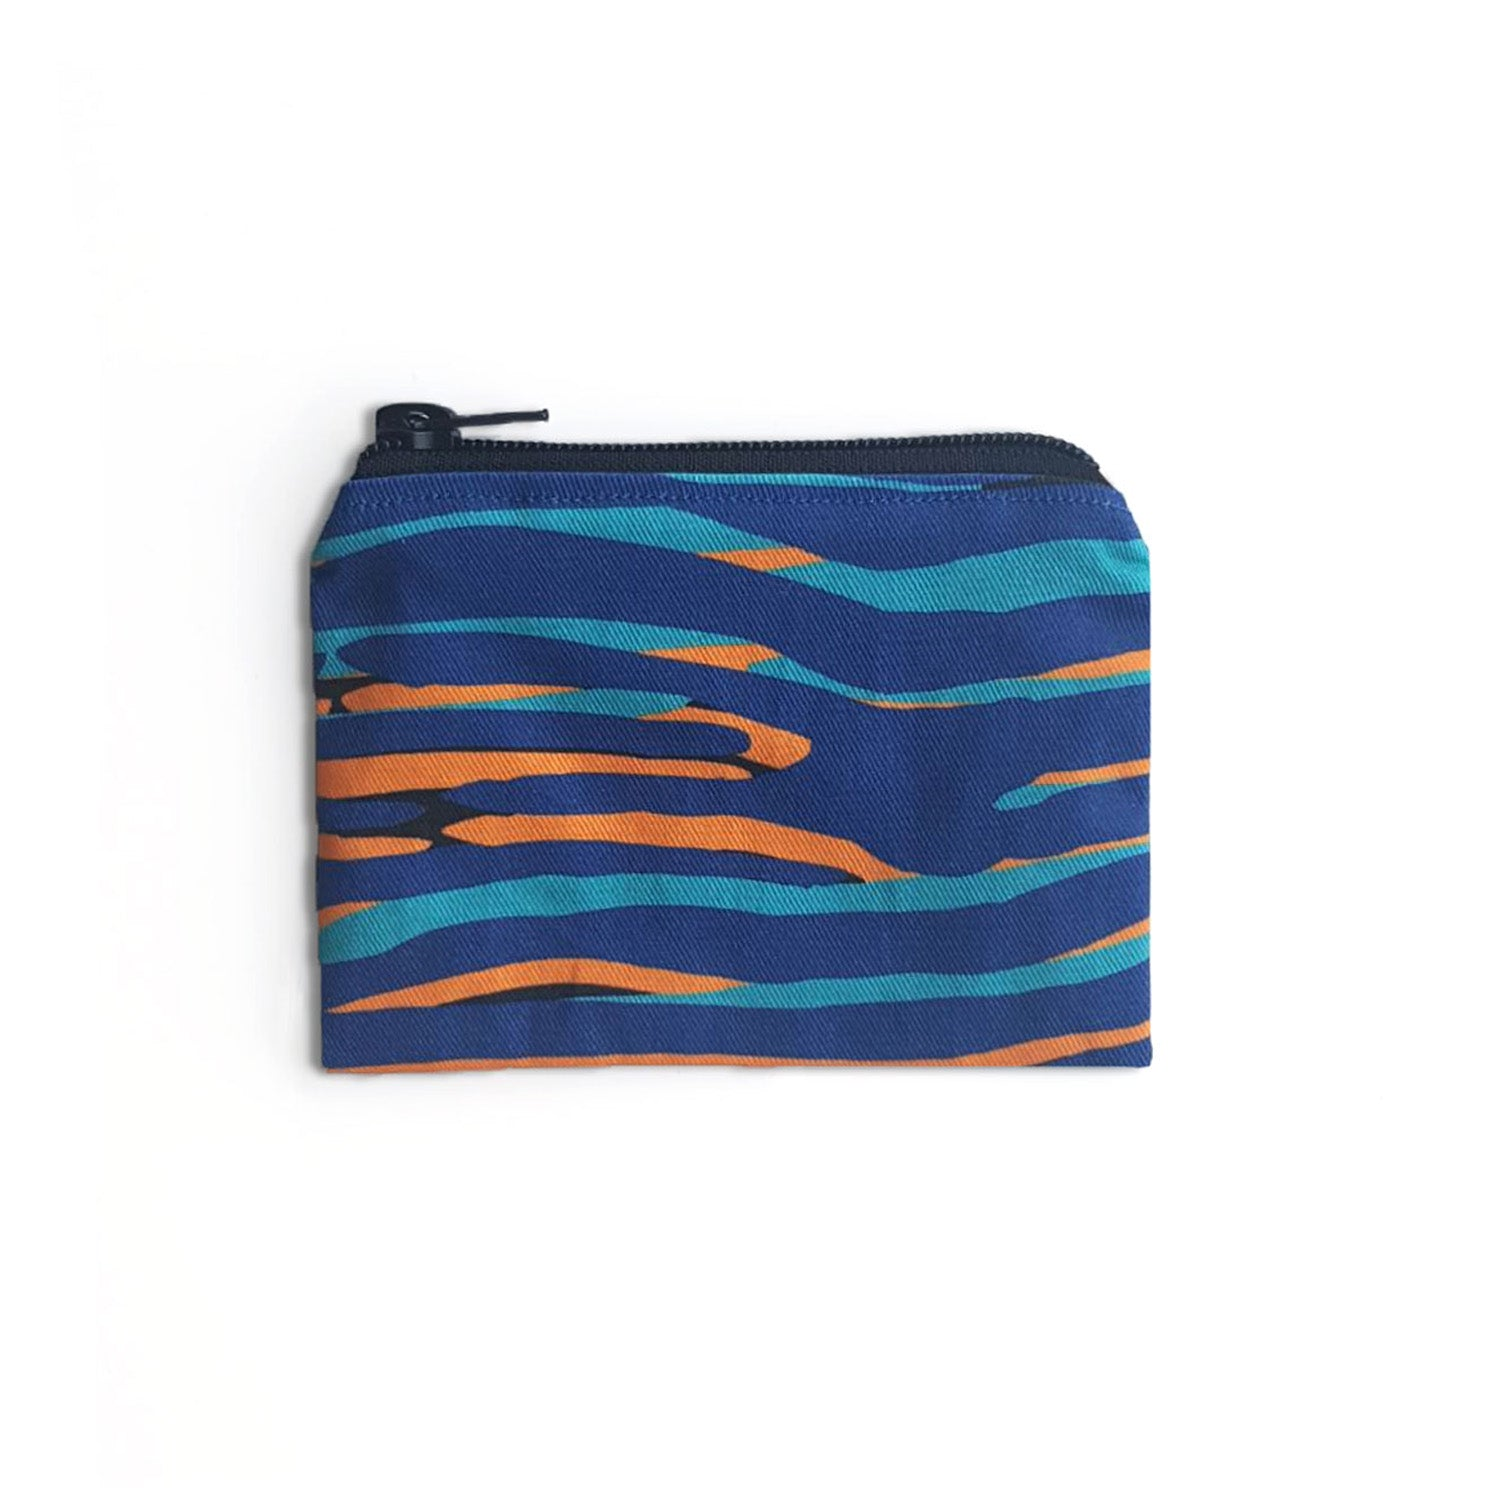 Coin Purse With Cami Pattern - OlaOla